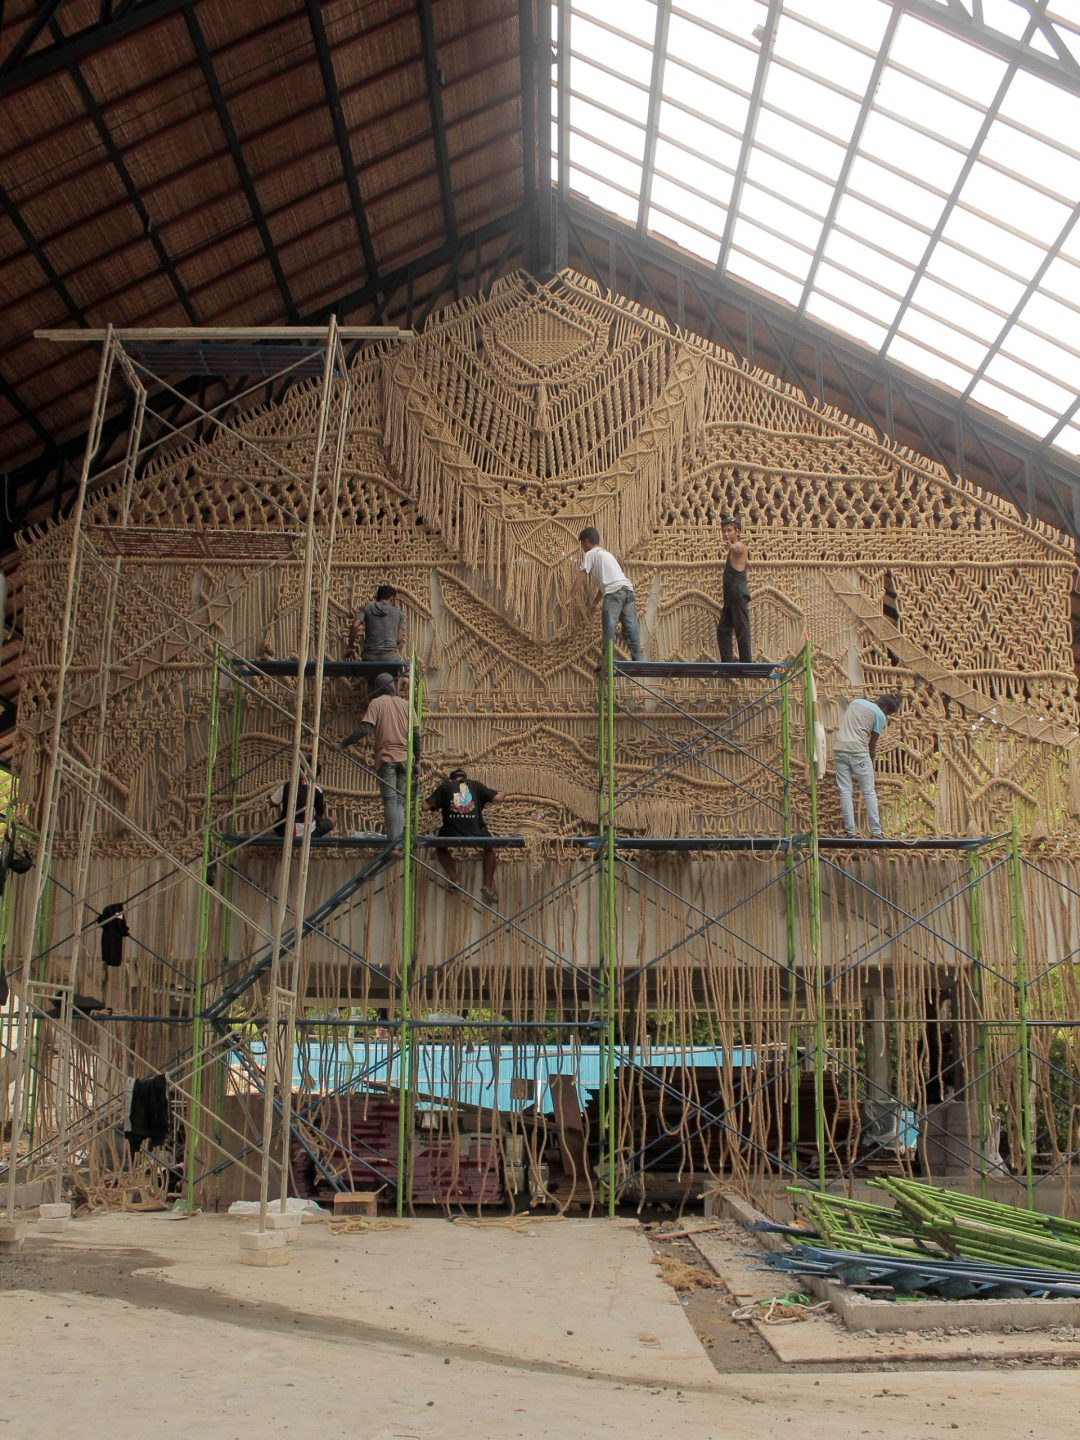 A Trio of Monumental Macramé Installations Stretch 37 Feet Across a Seaside Structure in Bali